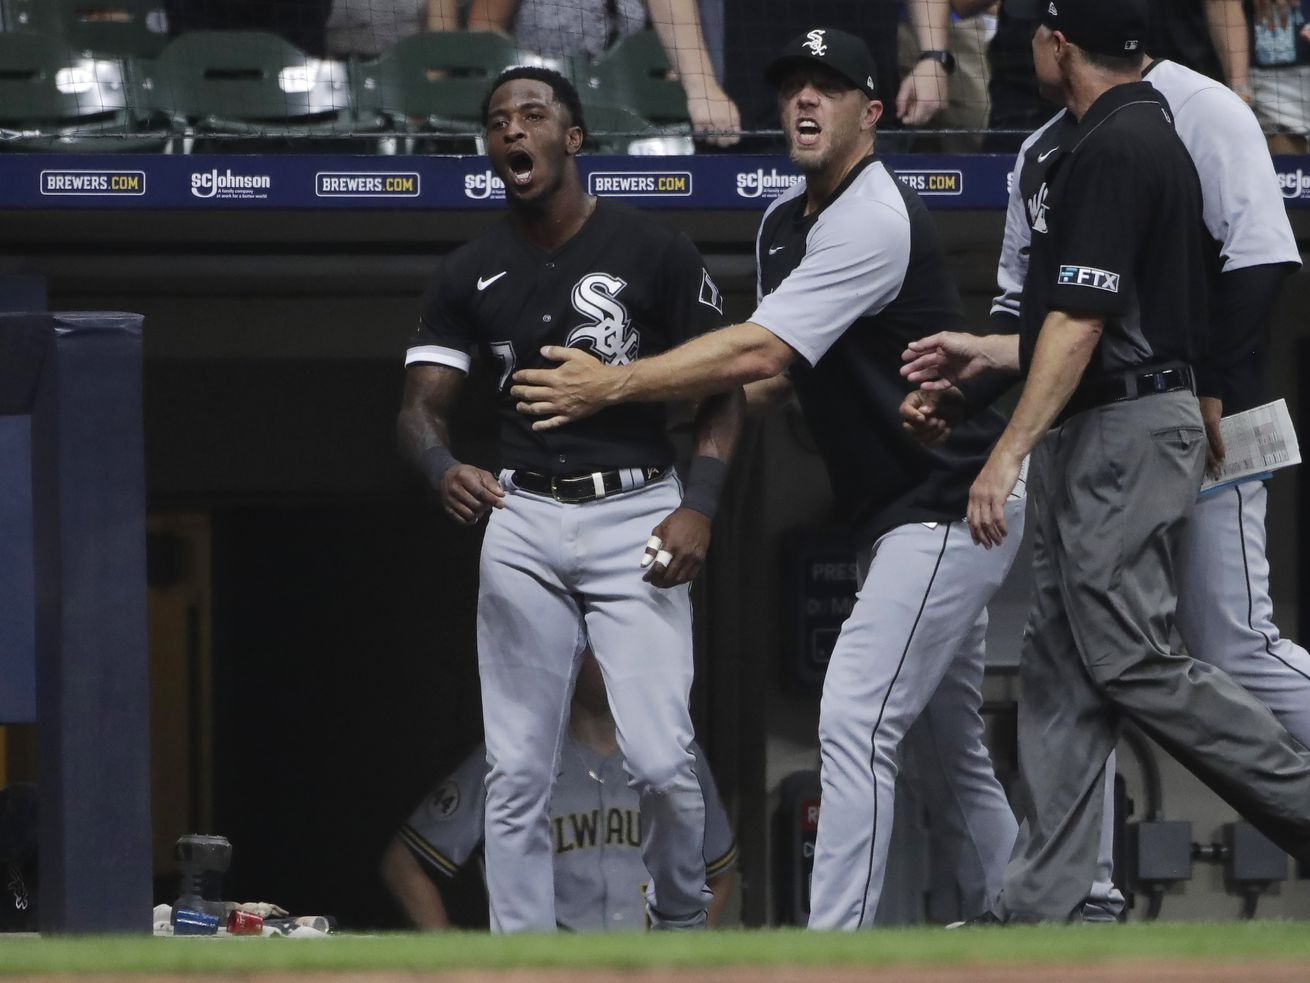 La Russa, Anderson ejected in White Sox' 7-1 loss to Brewers